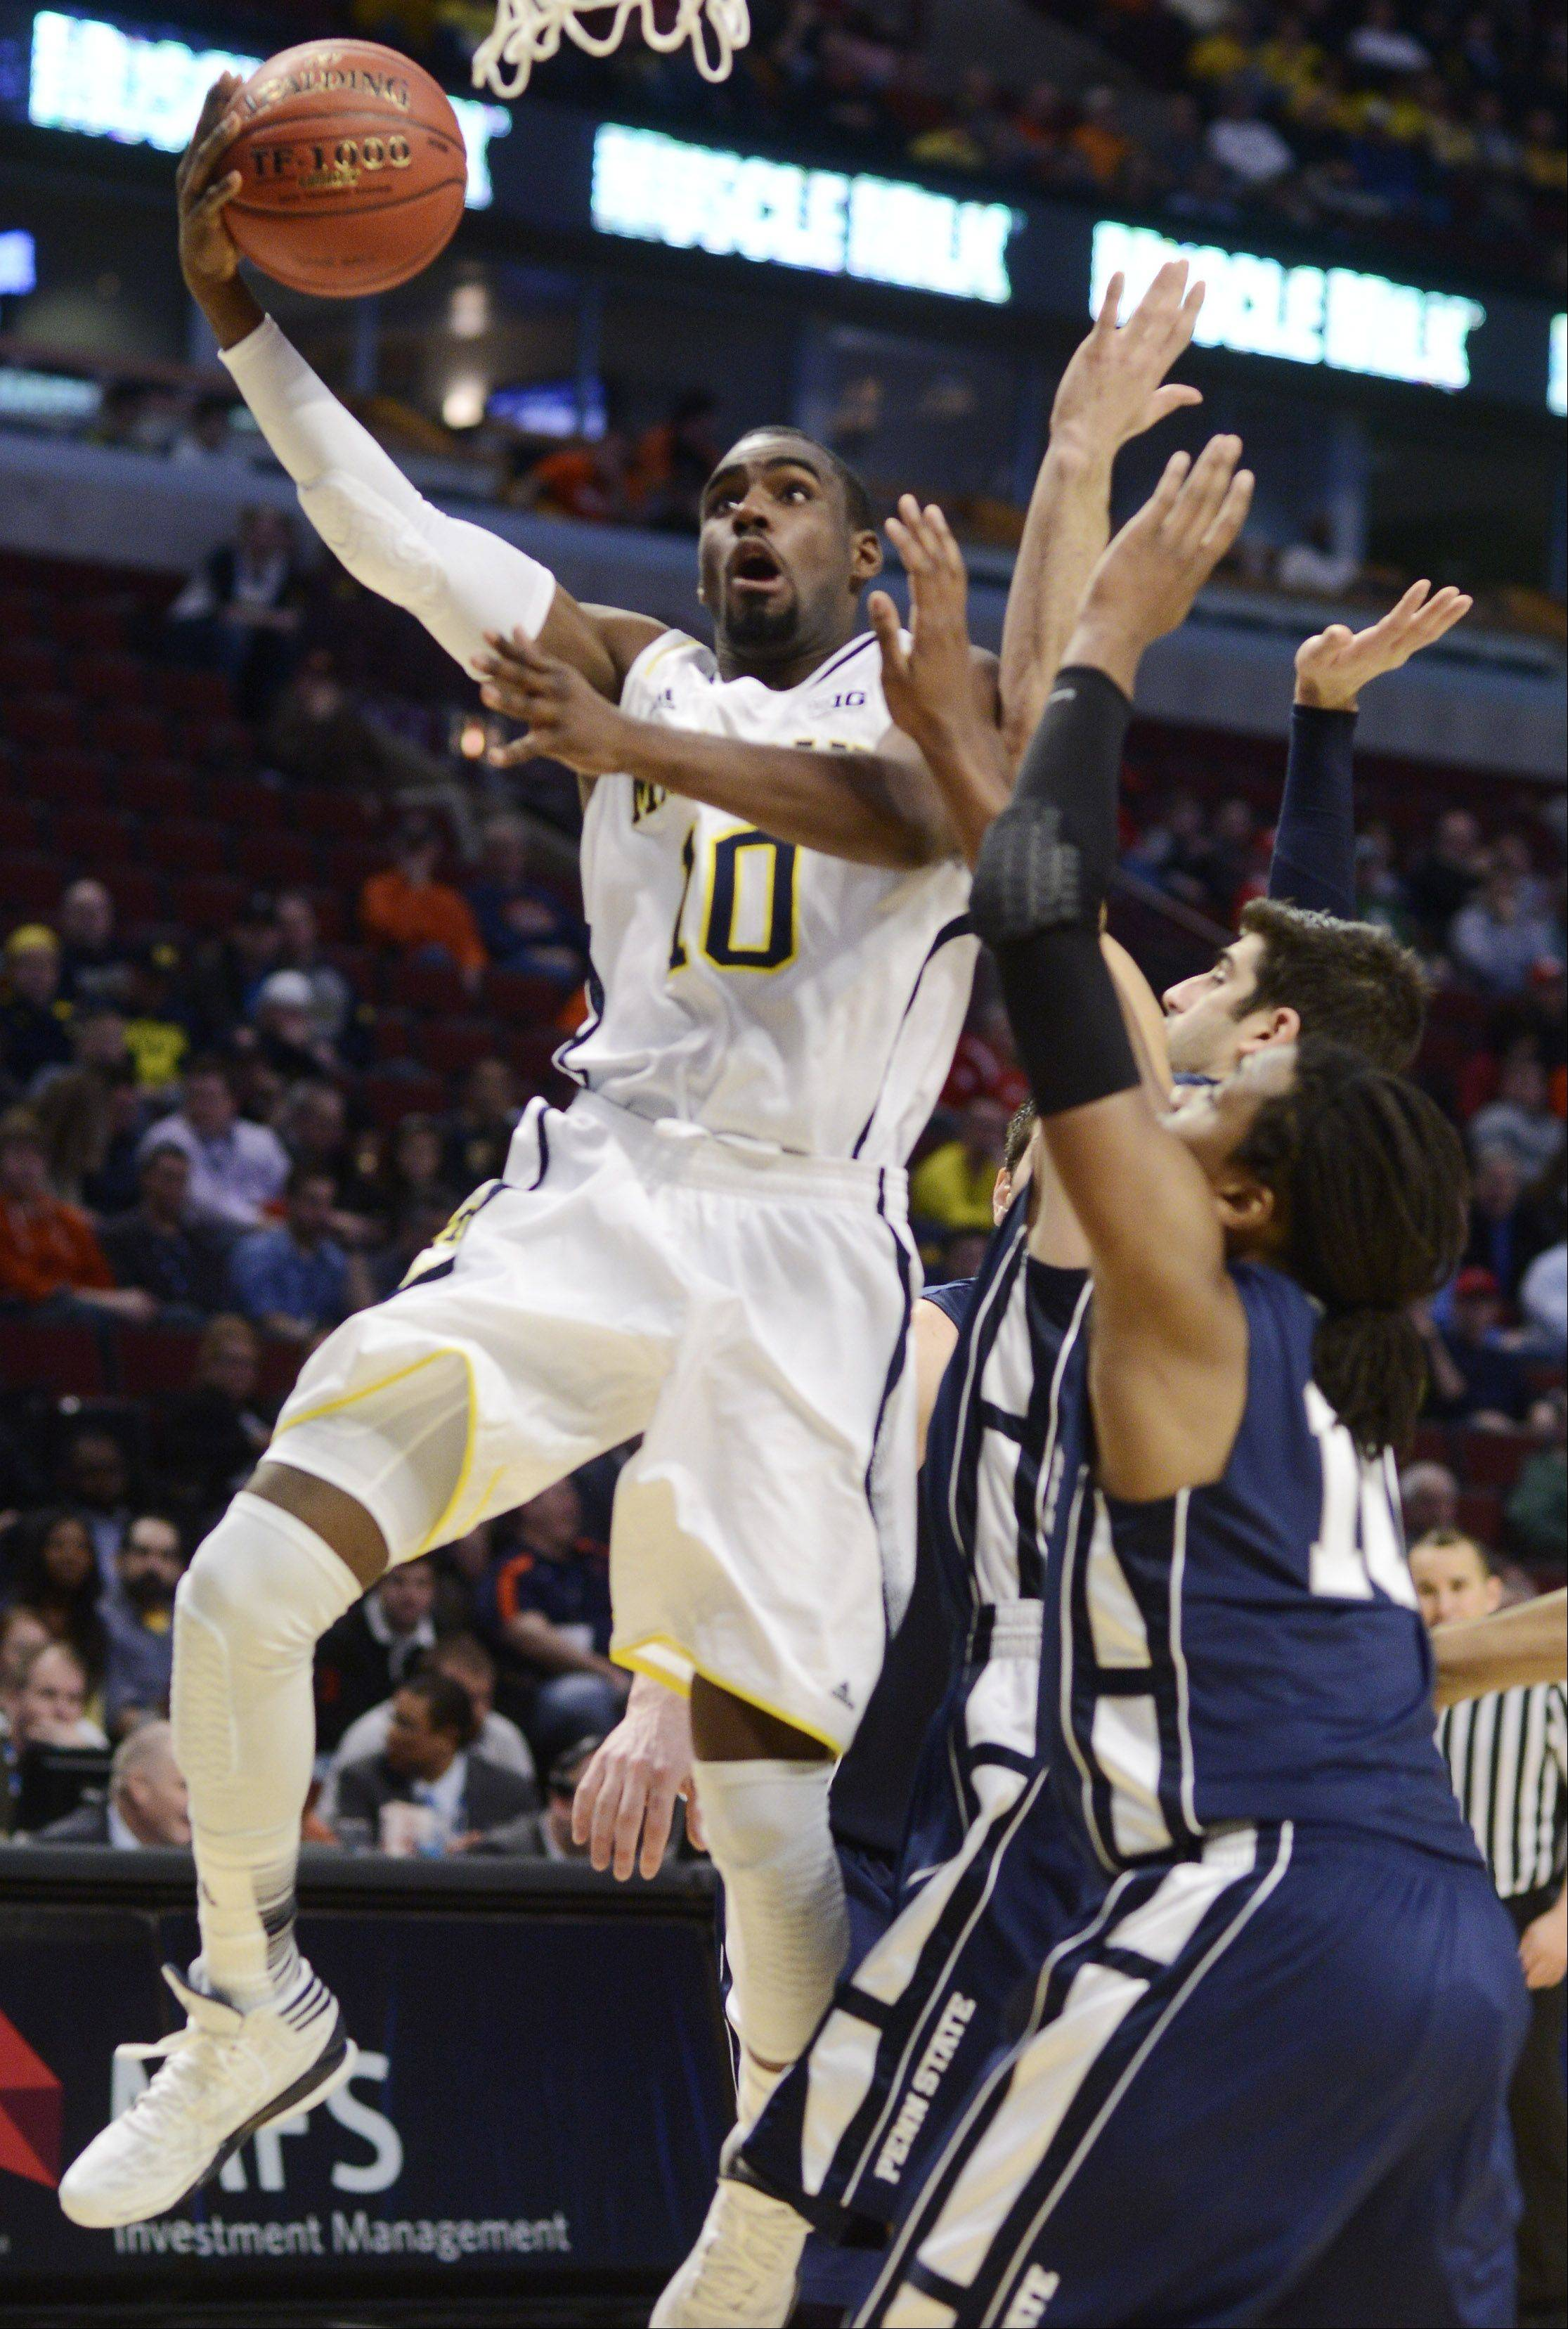 Michigan's Tim Hardaway Jr. drives to the basket.